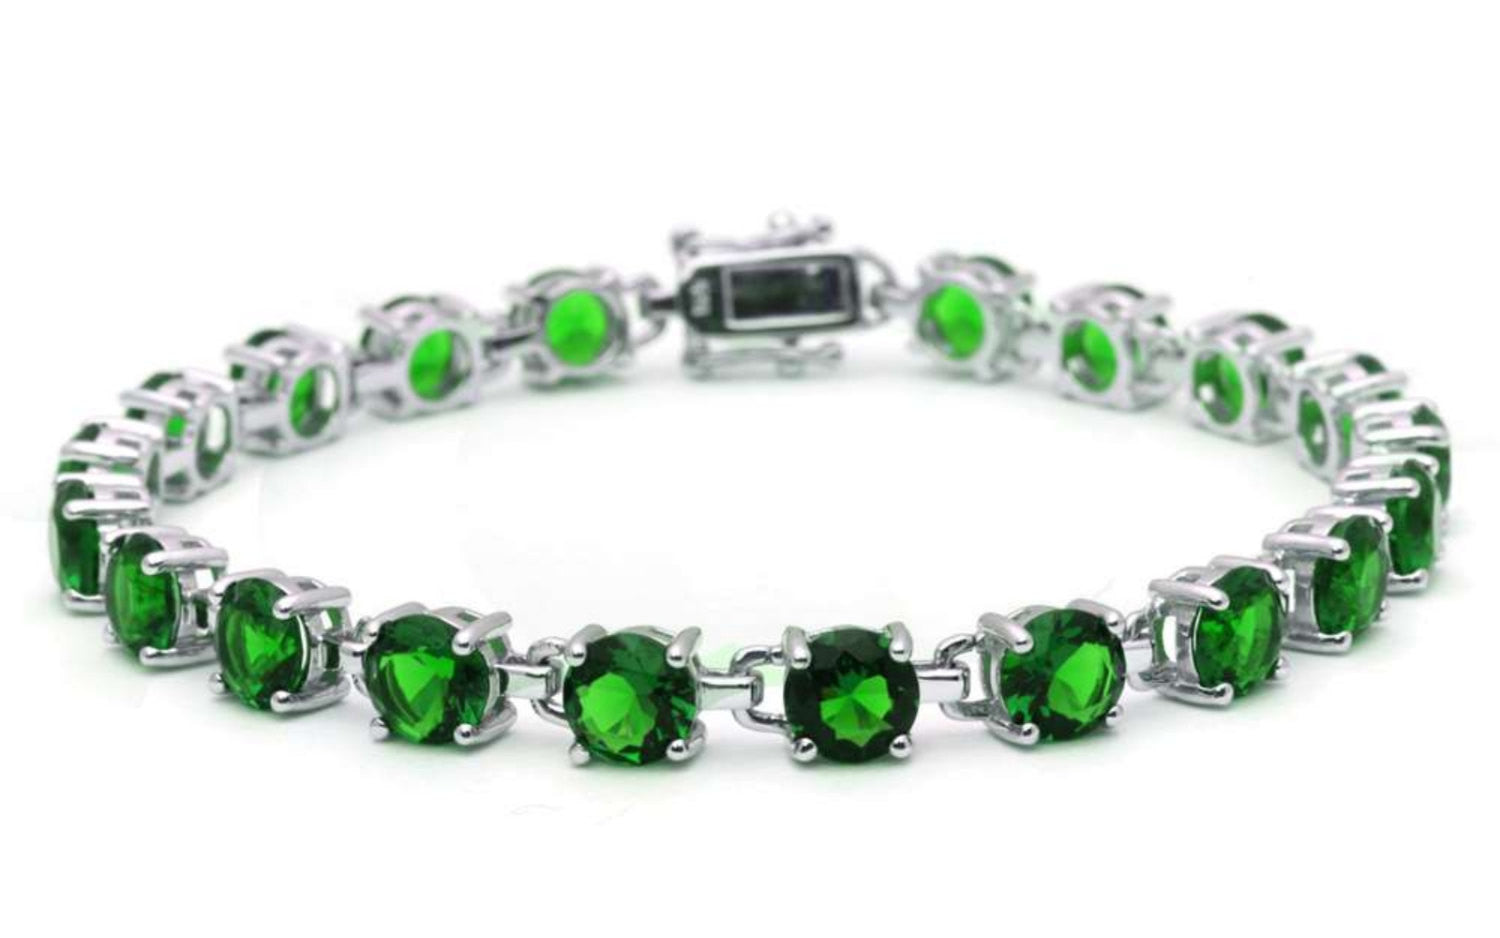 Tennis Bracelet 16.5 Carat Round Cut Emerald Green Solid 925 Sterling Silver Solitaire Wedding Engagement Tennis Bracelet Top Gift - Blue Apple Jewelry